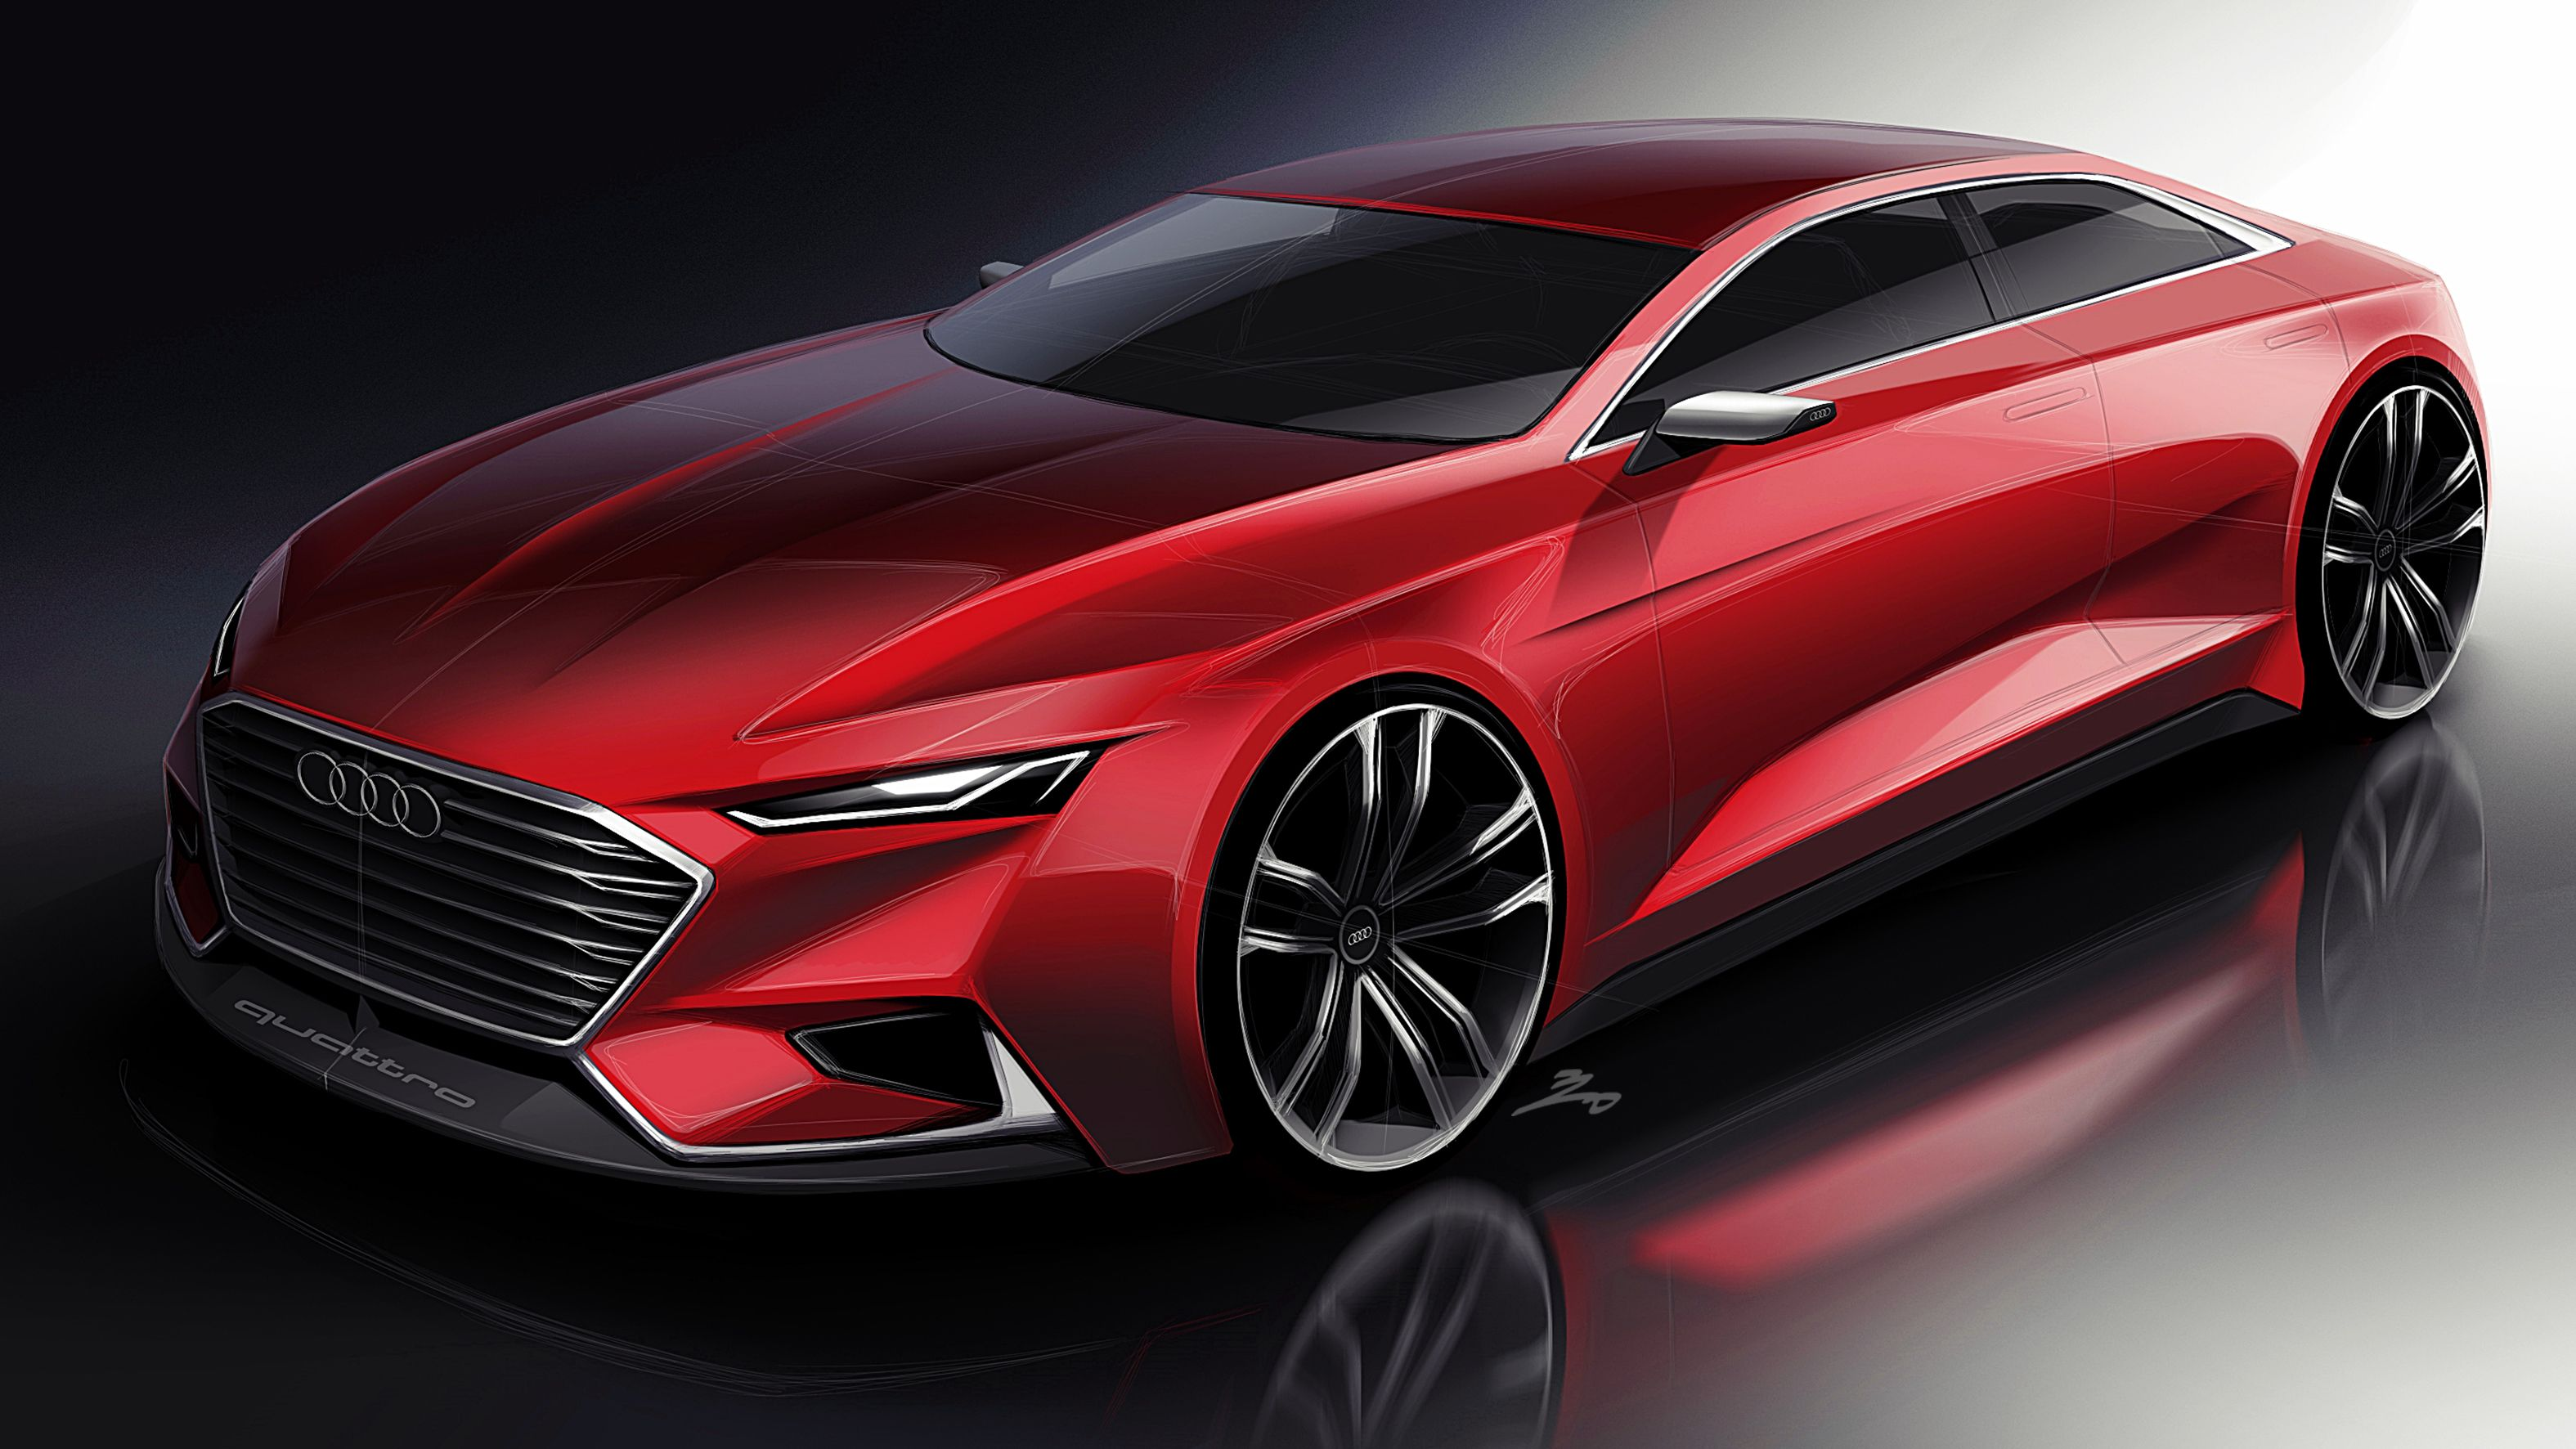 German sport Car design sketch, Car design, Concept car